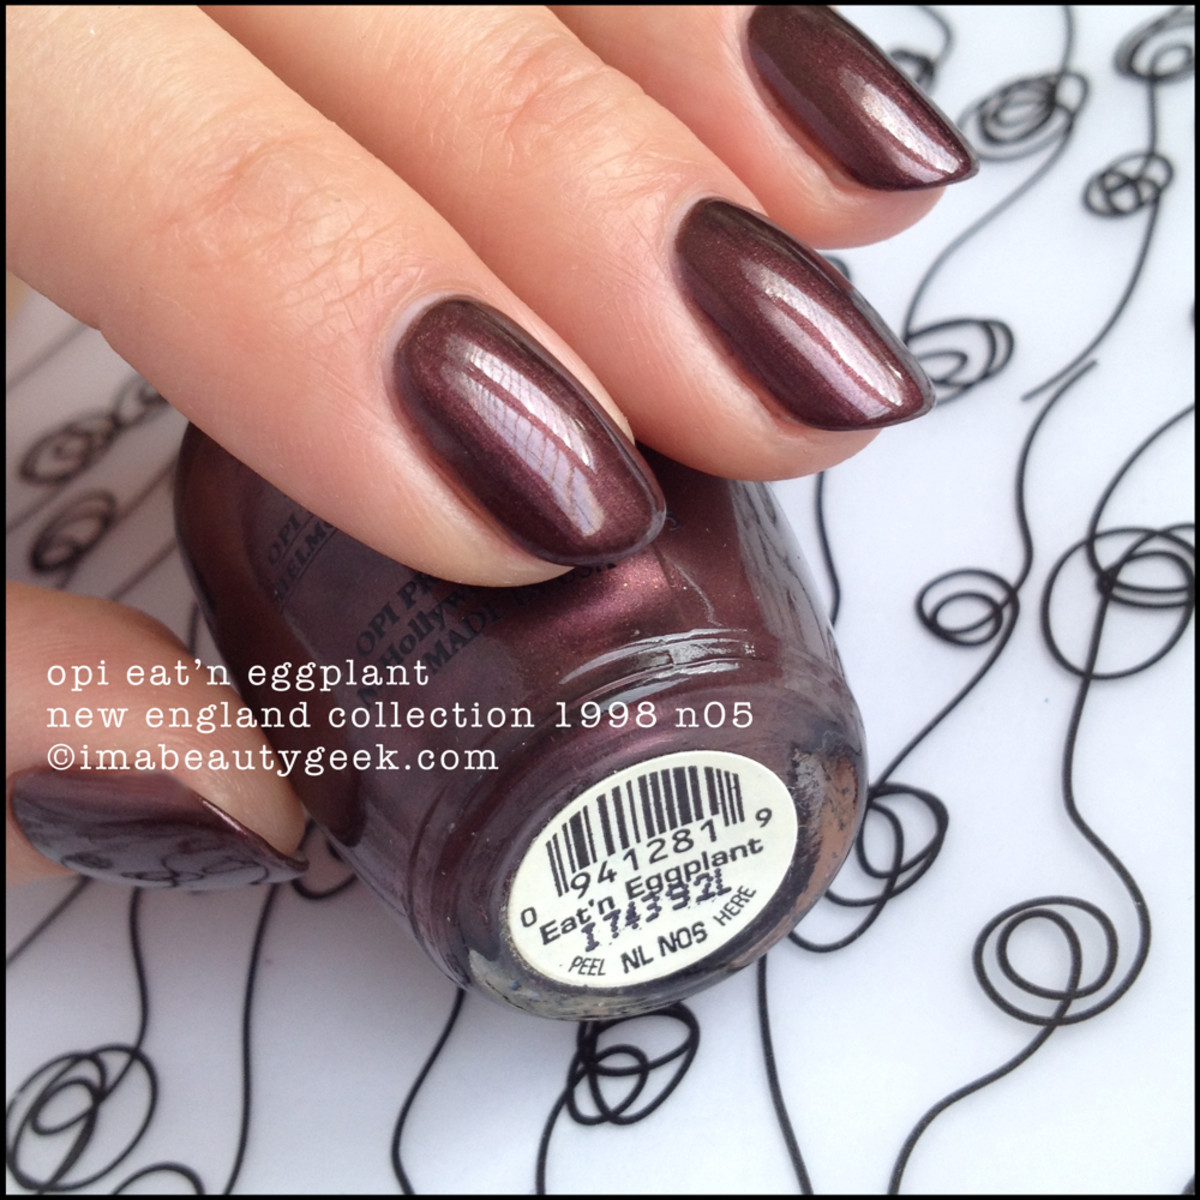 OPI Eat'n Eggplant New England Collection 1998 Black Label OPI